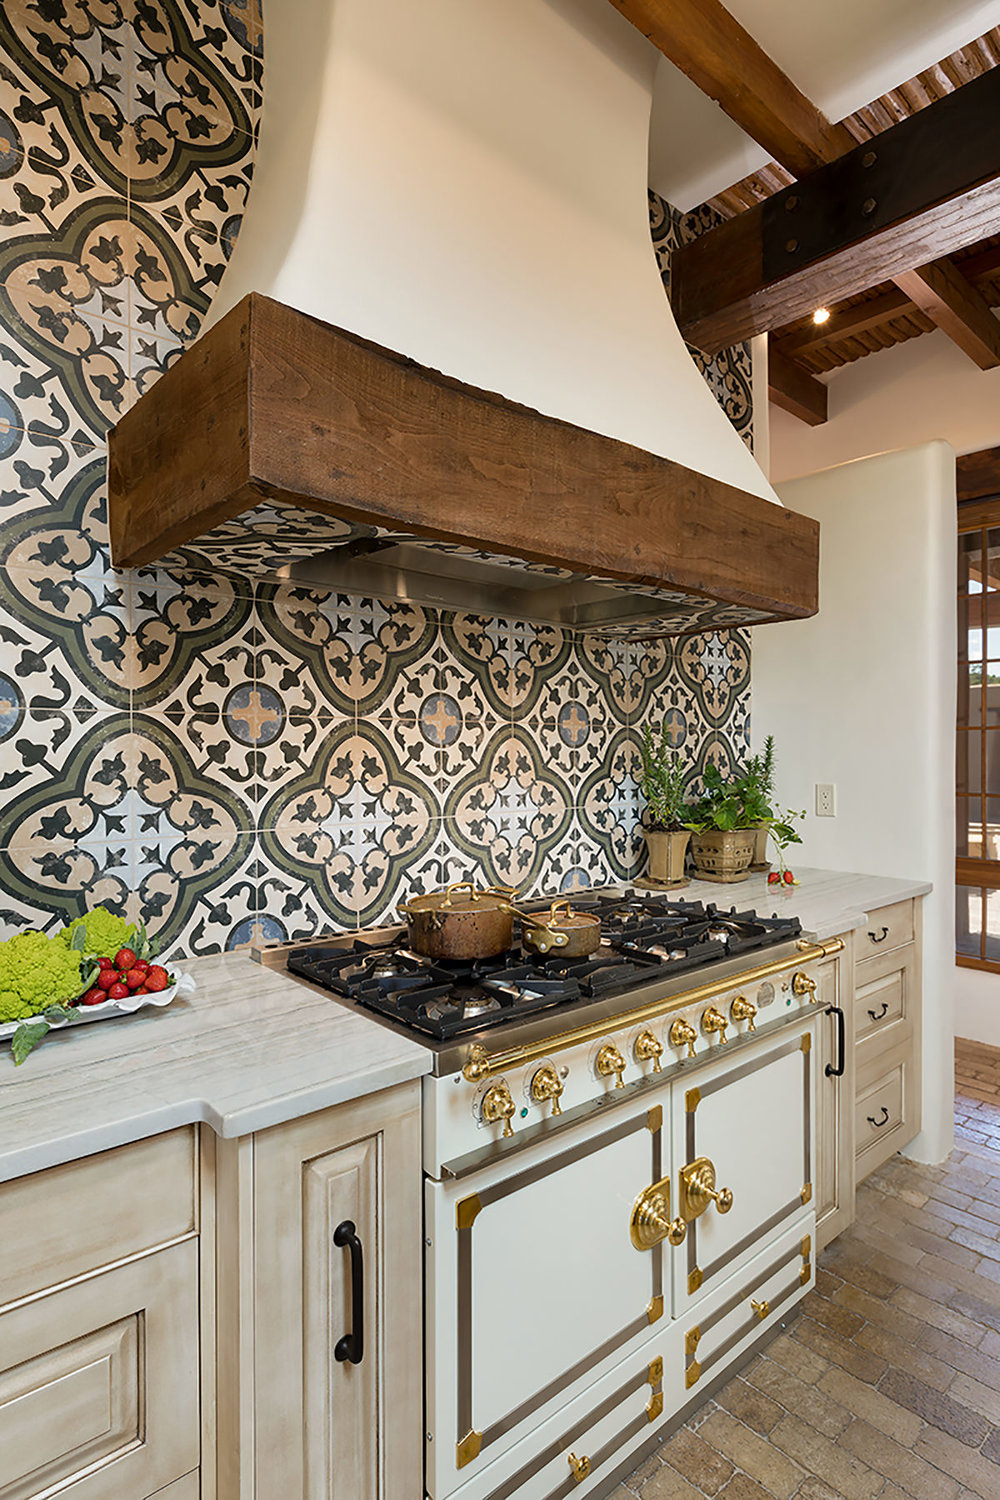 santa-fe-new-mexico-kitchen-breakfast-nook-interior-design-montgomery-home-6.jpg